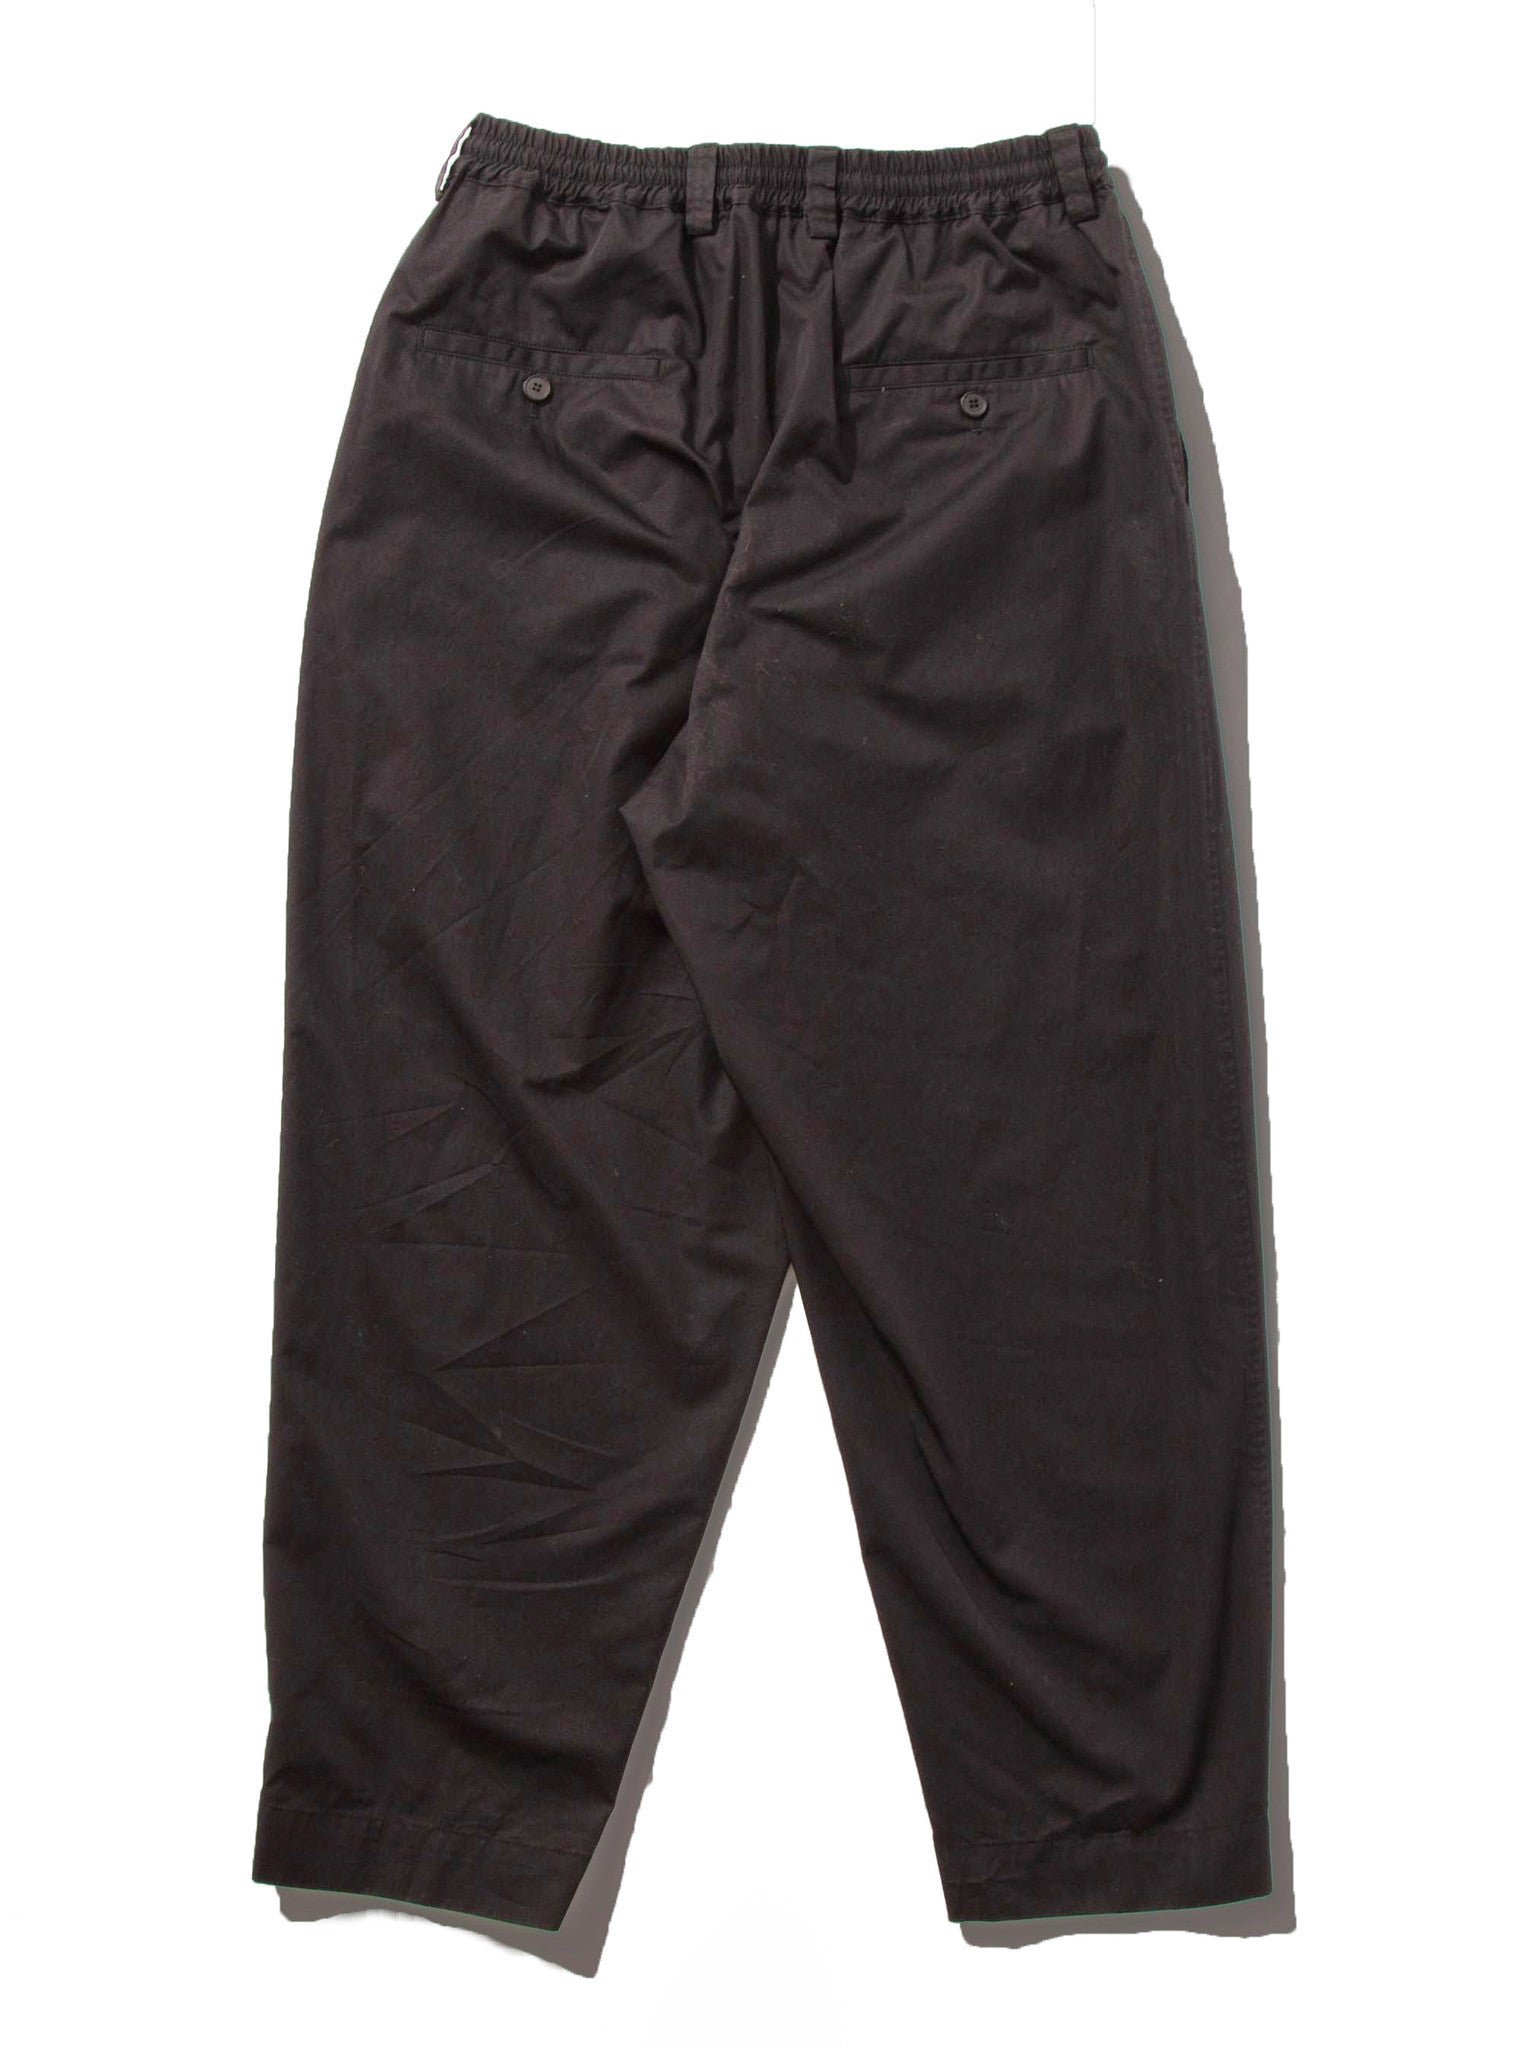 Black Light Washed Cotton Twill Drawstring Trouser 5